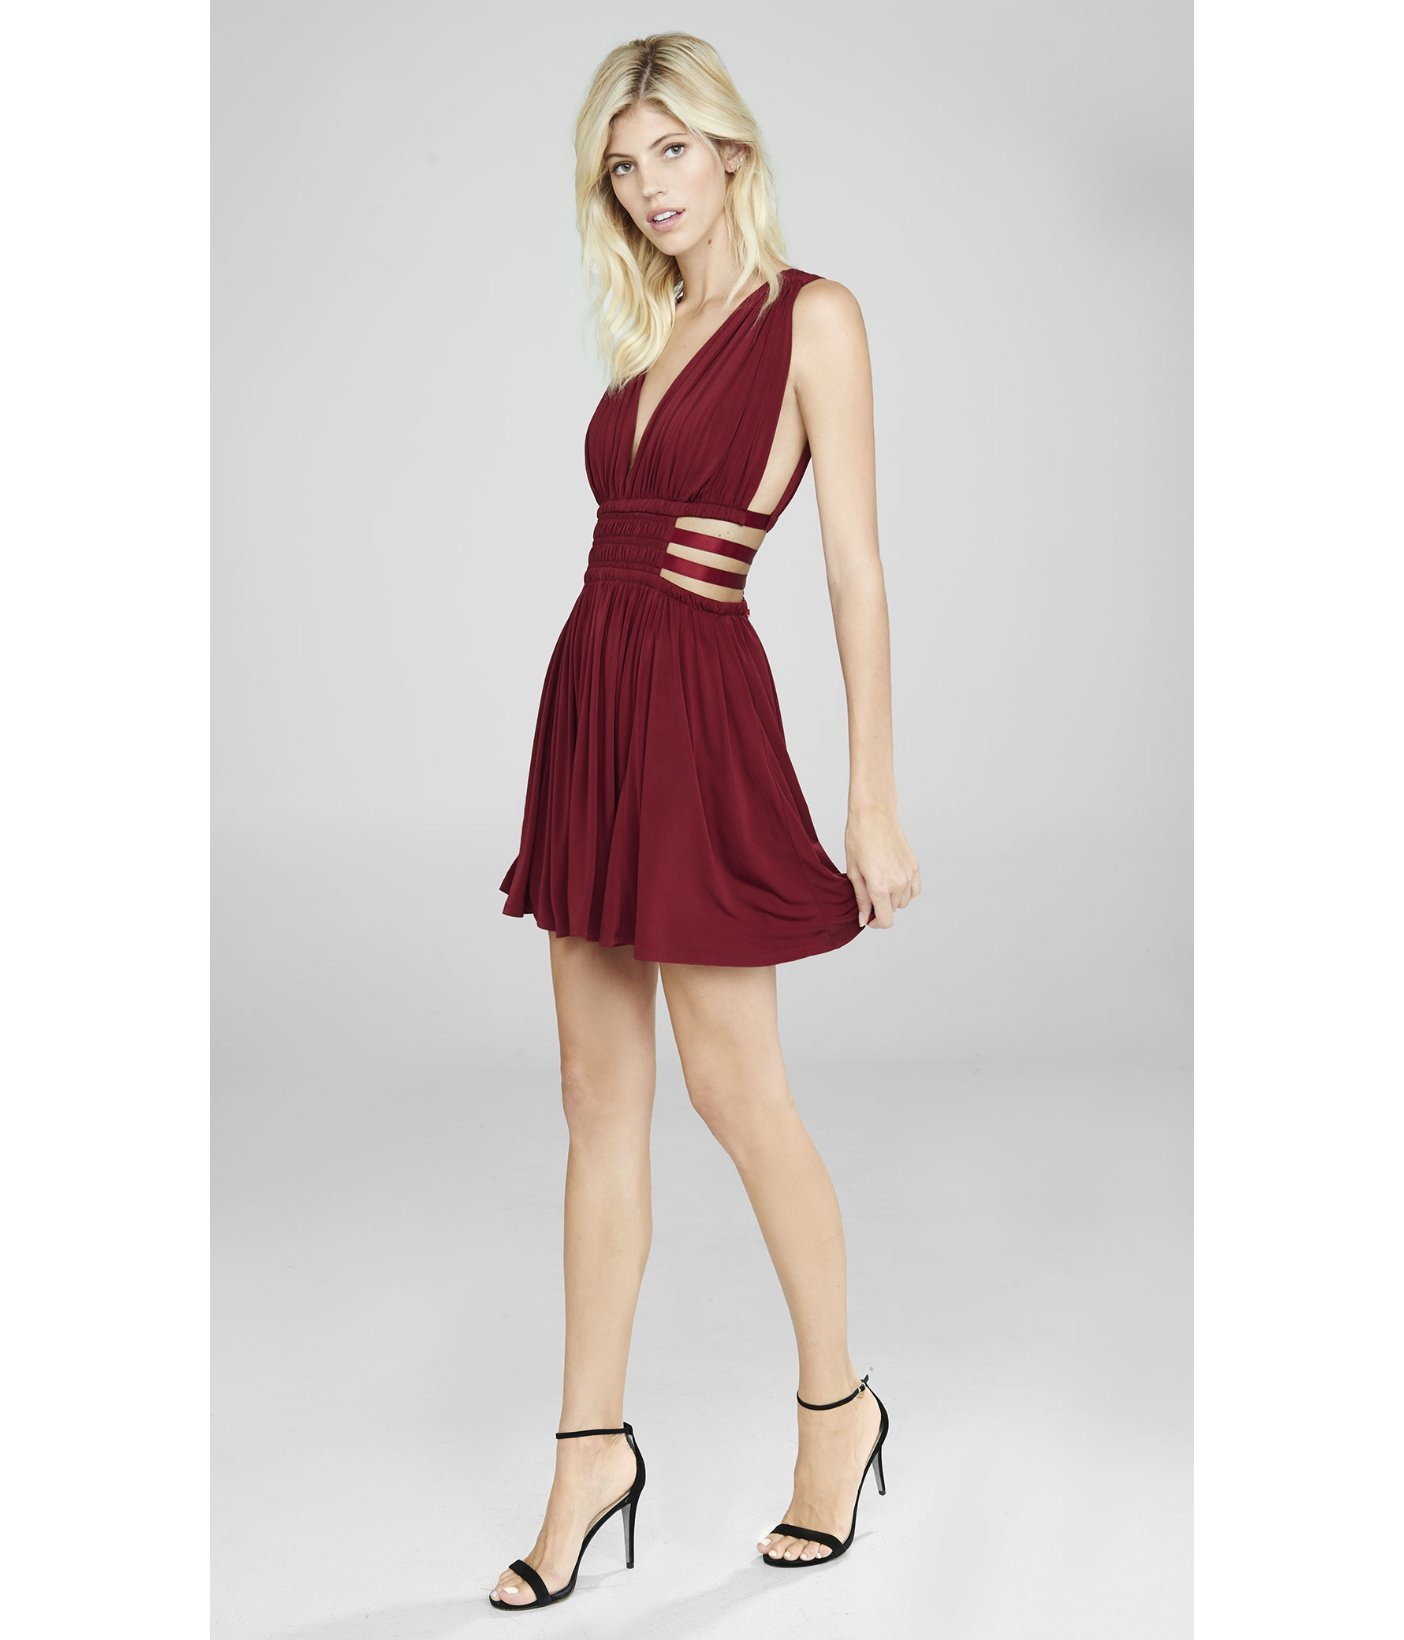 Dress Express - Dress Foto and Picture